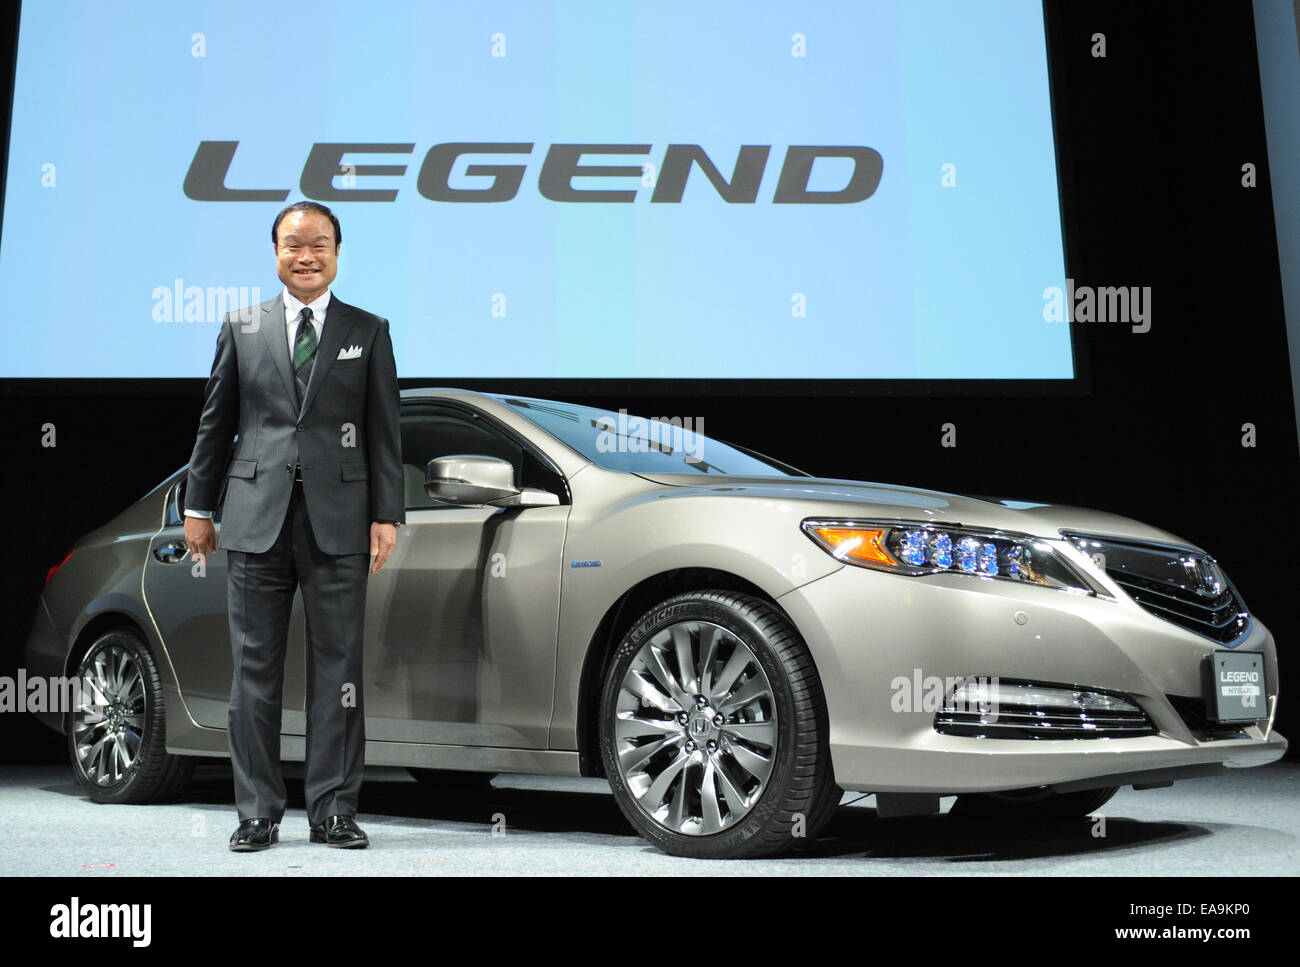 Takanobu Ito Japans Auato Maker Honda Motors President And CEO Poses For Photograph During A Press Conference To Unveil Its Renewed Model LEGEND In